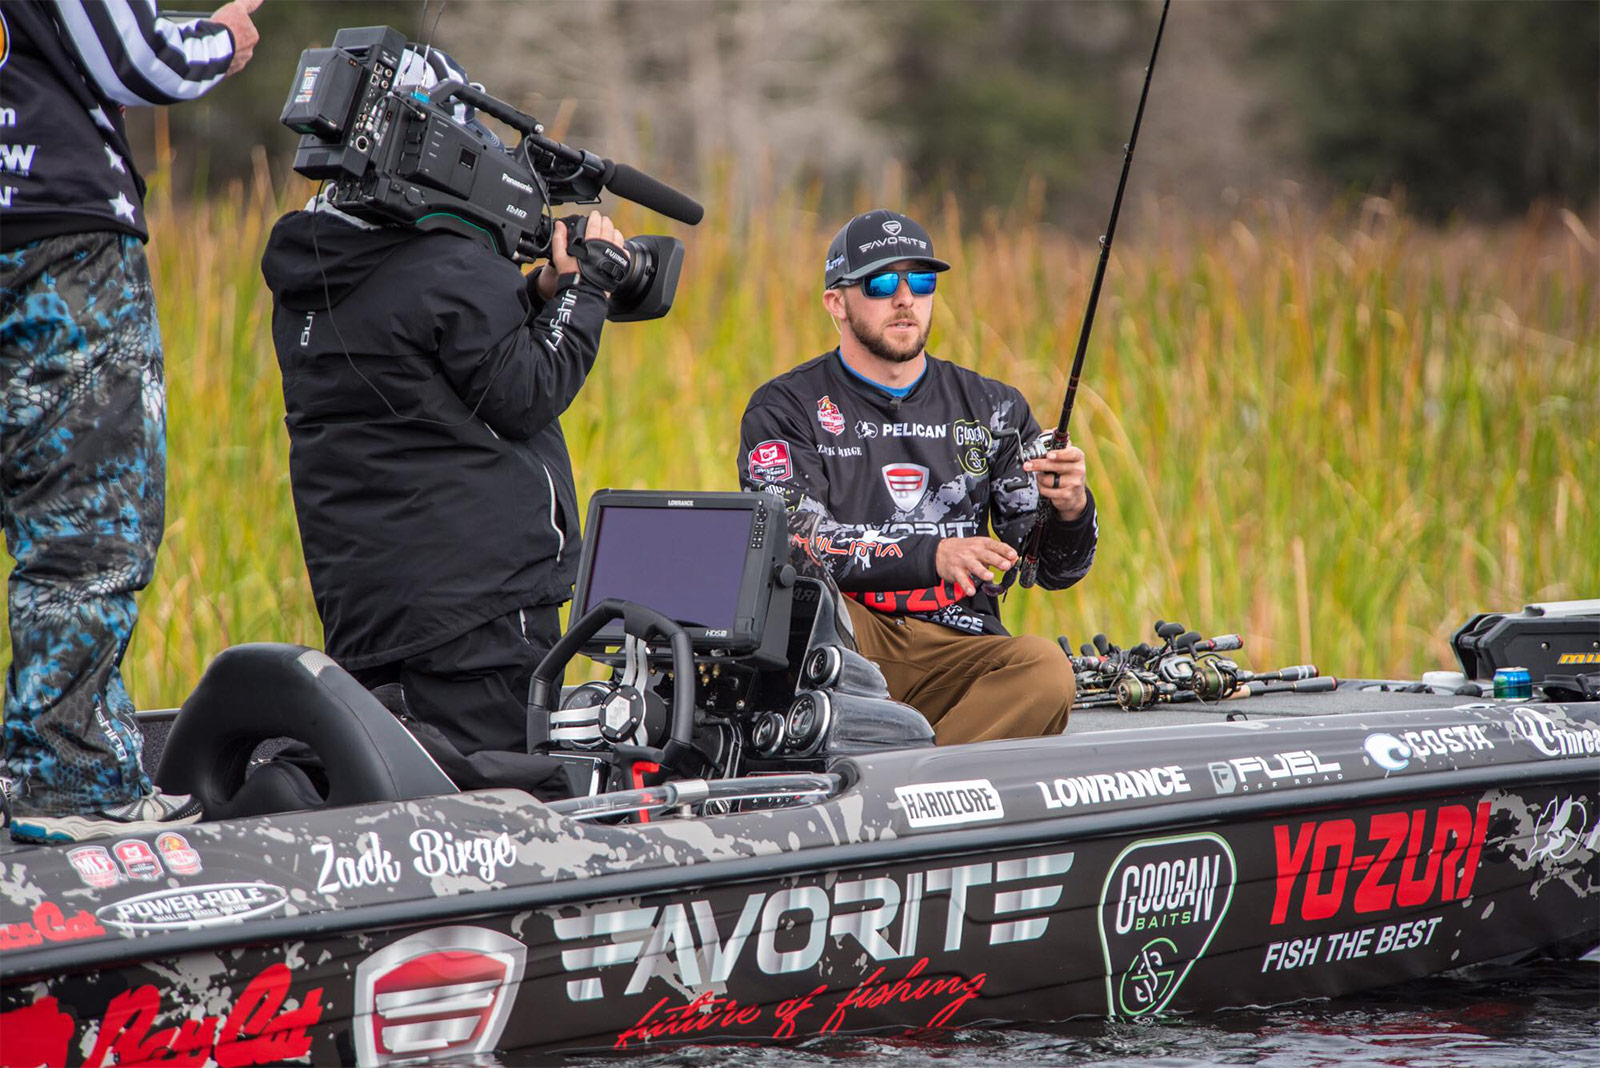 Pelican Products Zack Birge flw award pro bass fishing